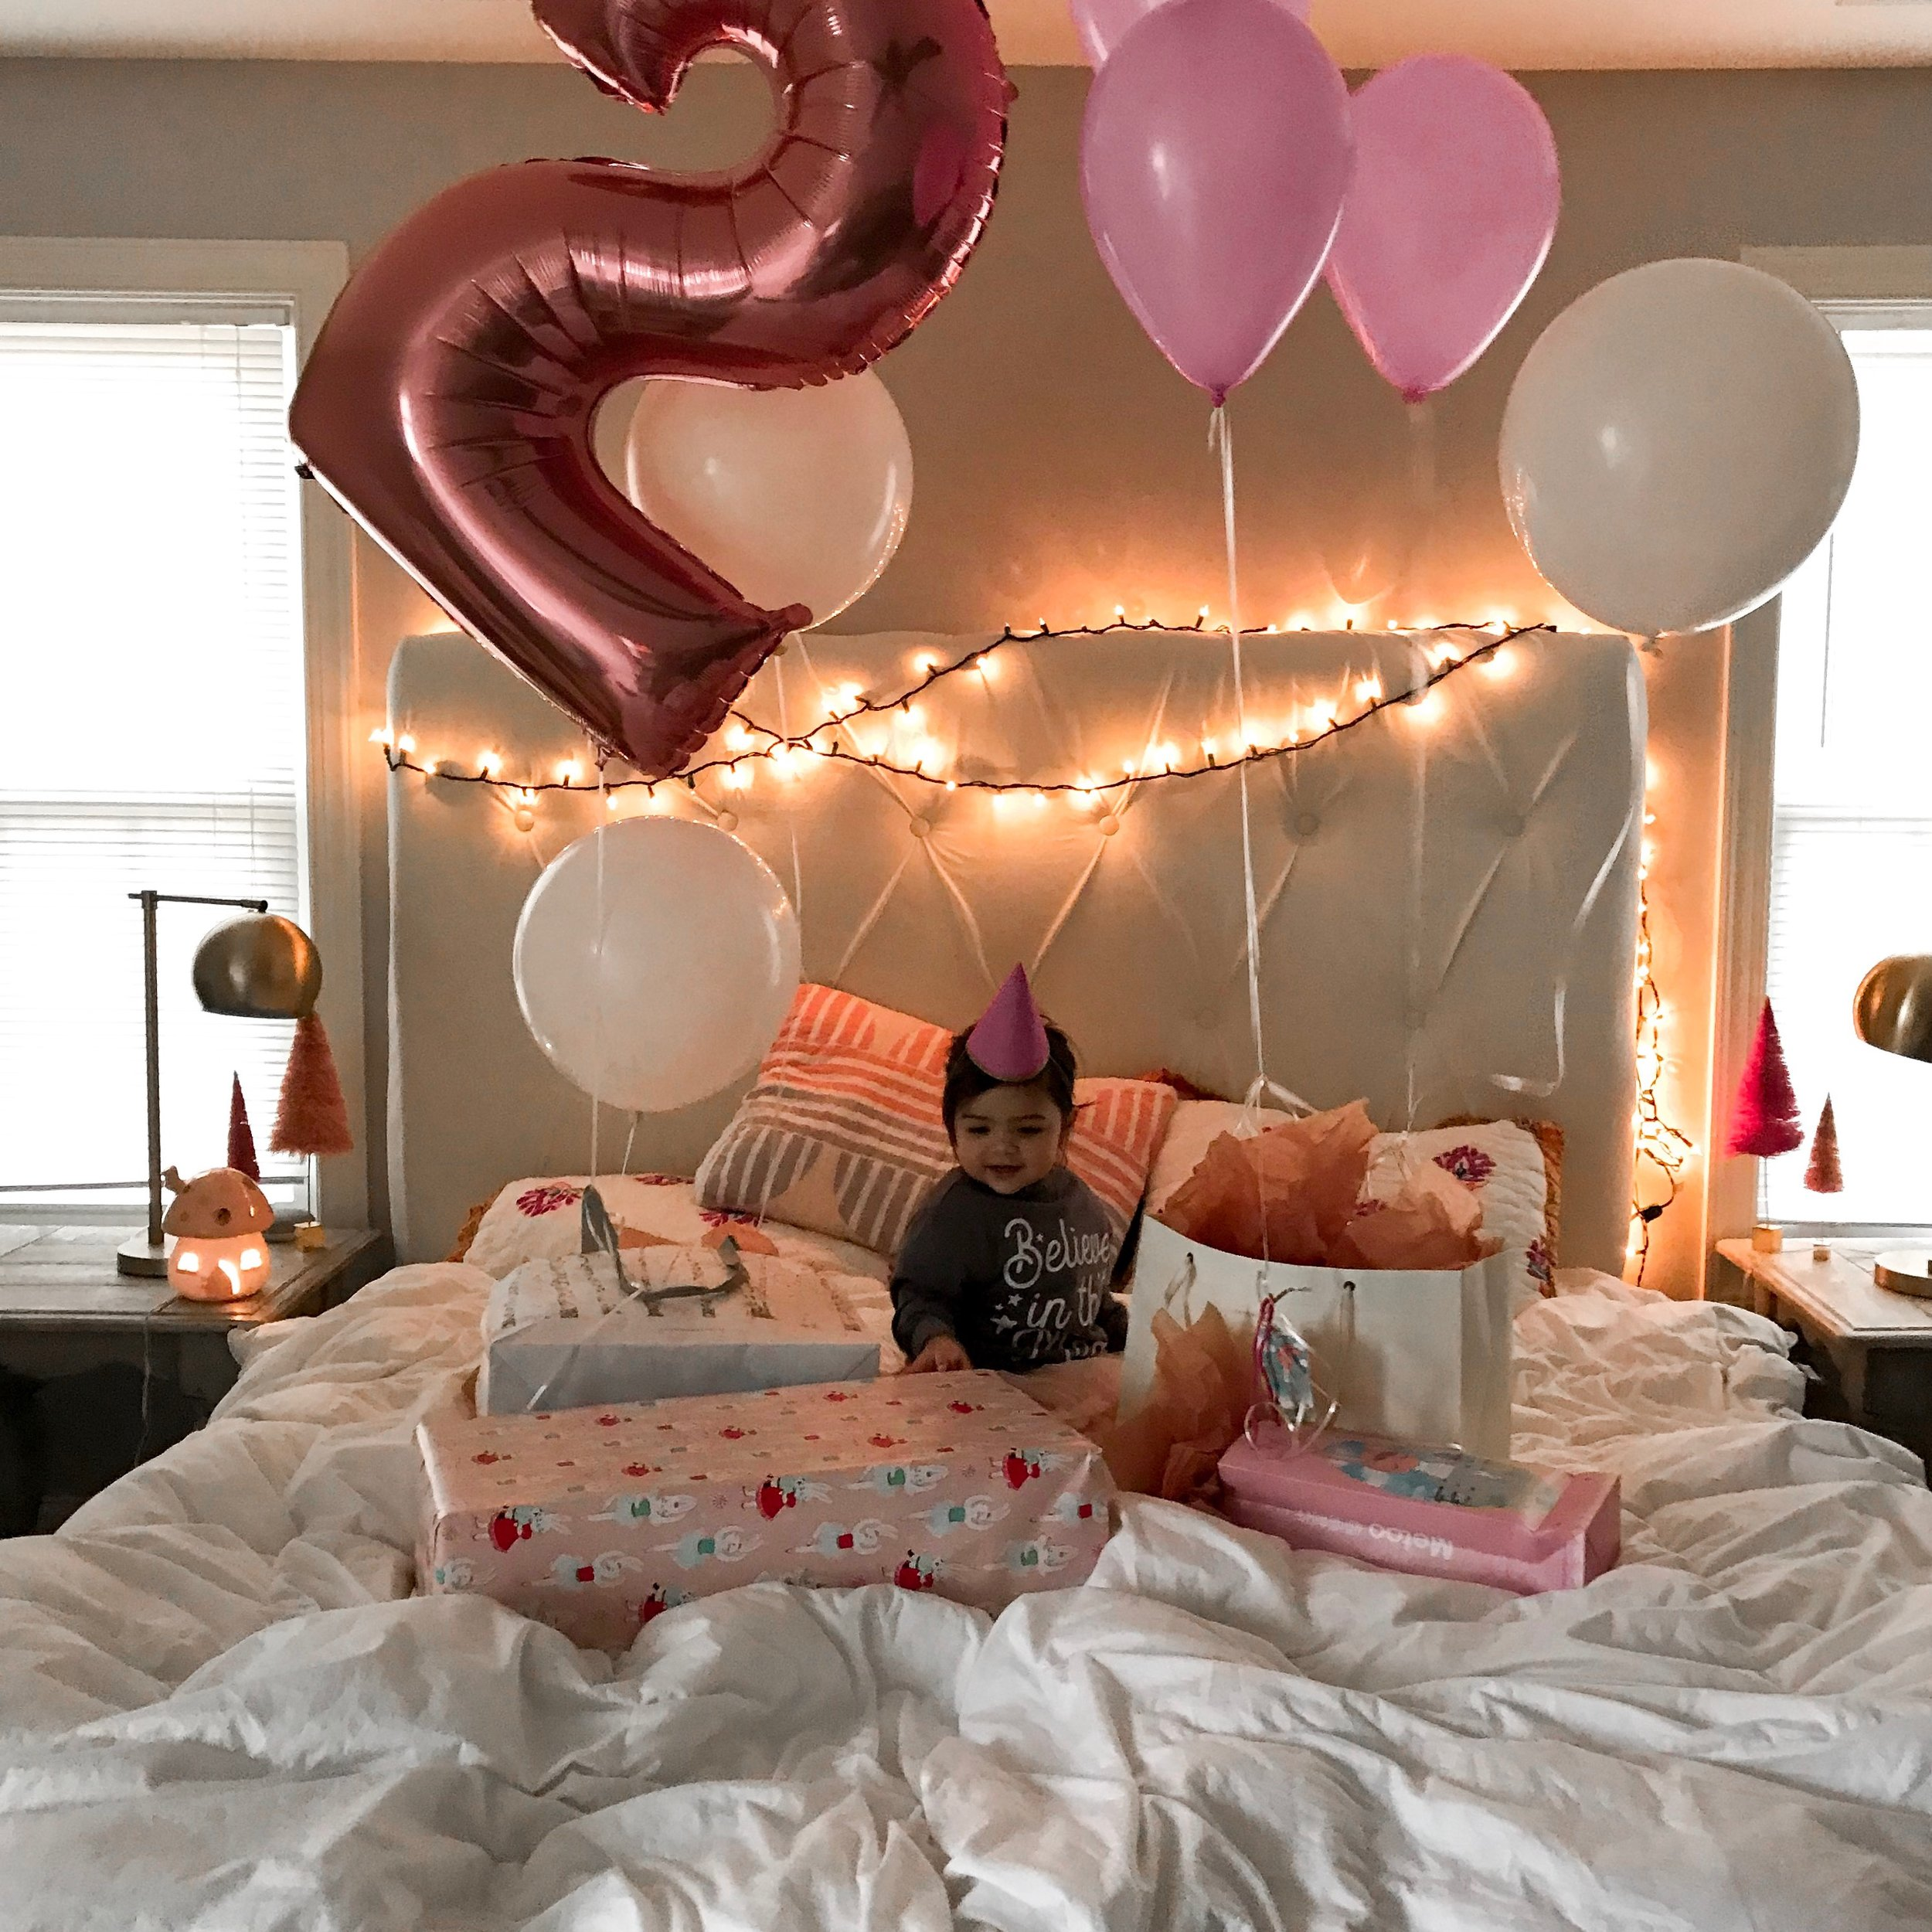 The sweetest magical moment from Hadley's second birthday celebration. Twinkle lights + balloons + magic.